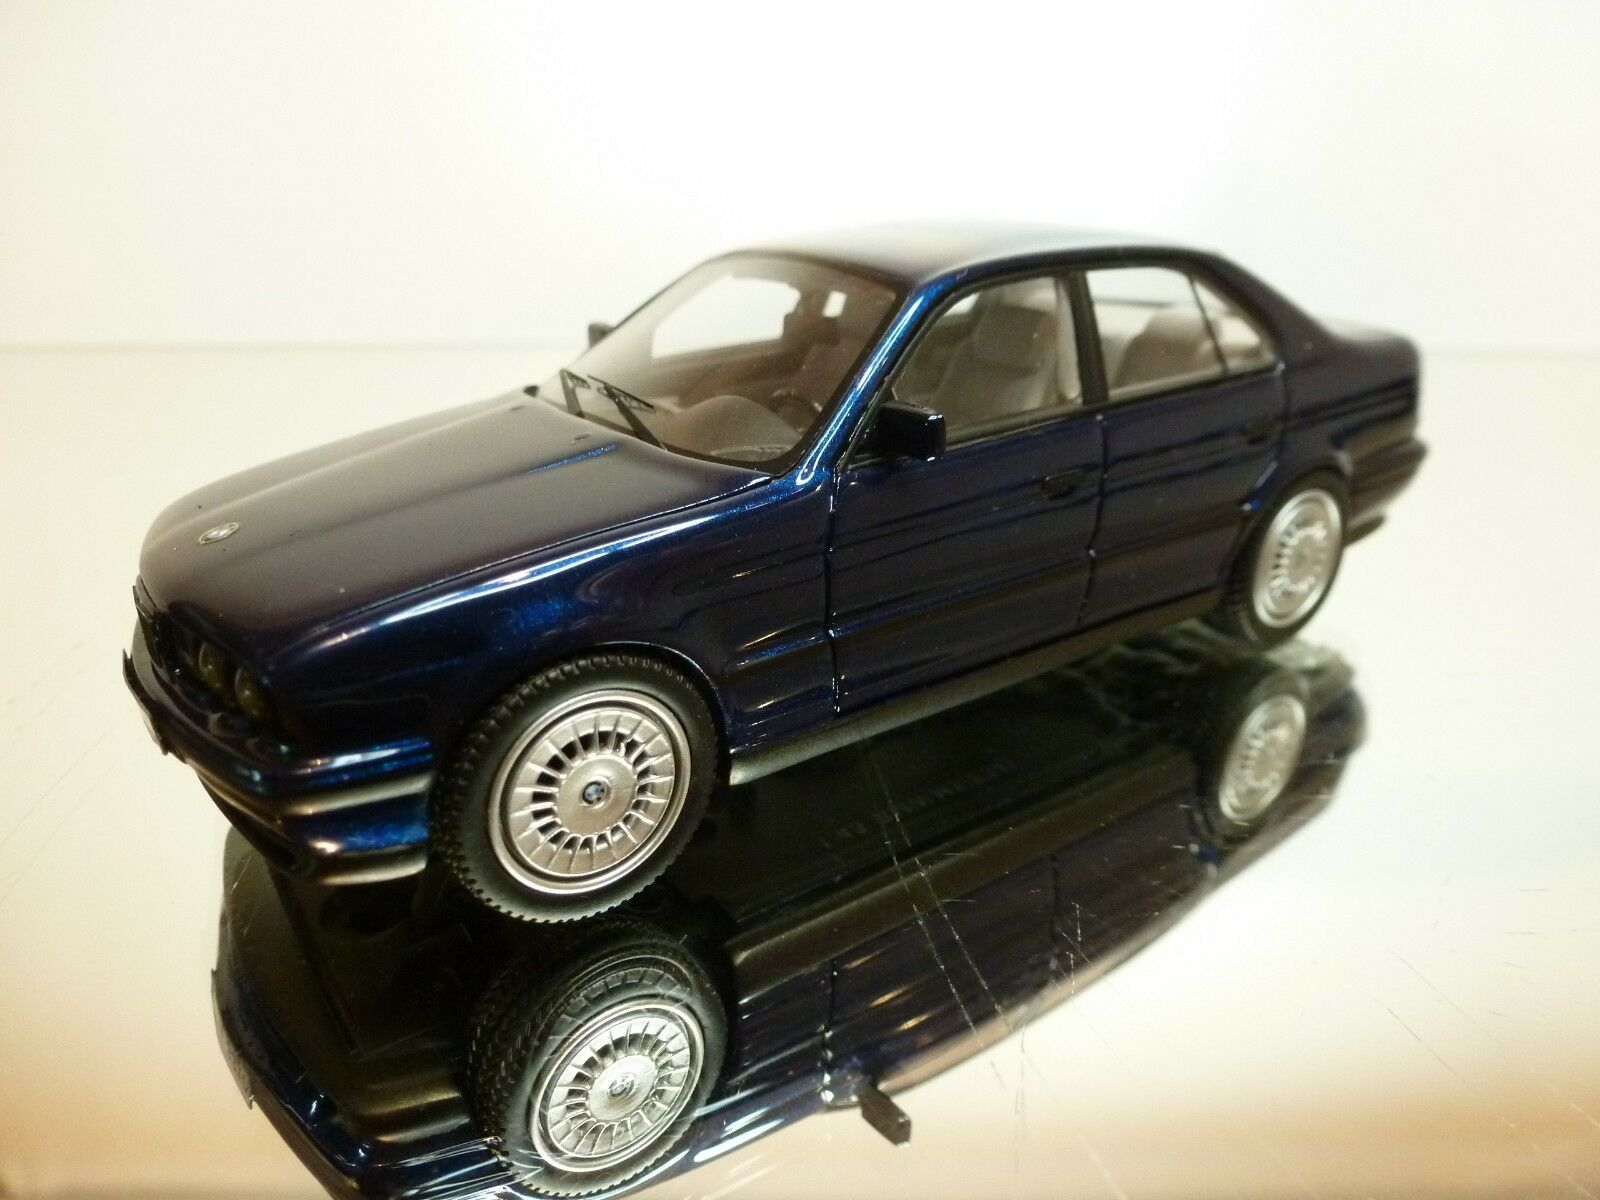 NEO SCALE MODELS BMW M5 E34 - rare Couleur bleu METALLIC 1 43  - EXCELLENT - 24